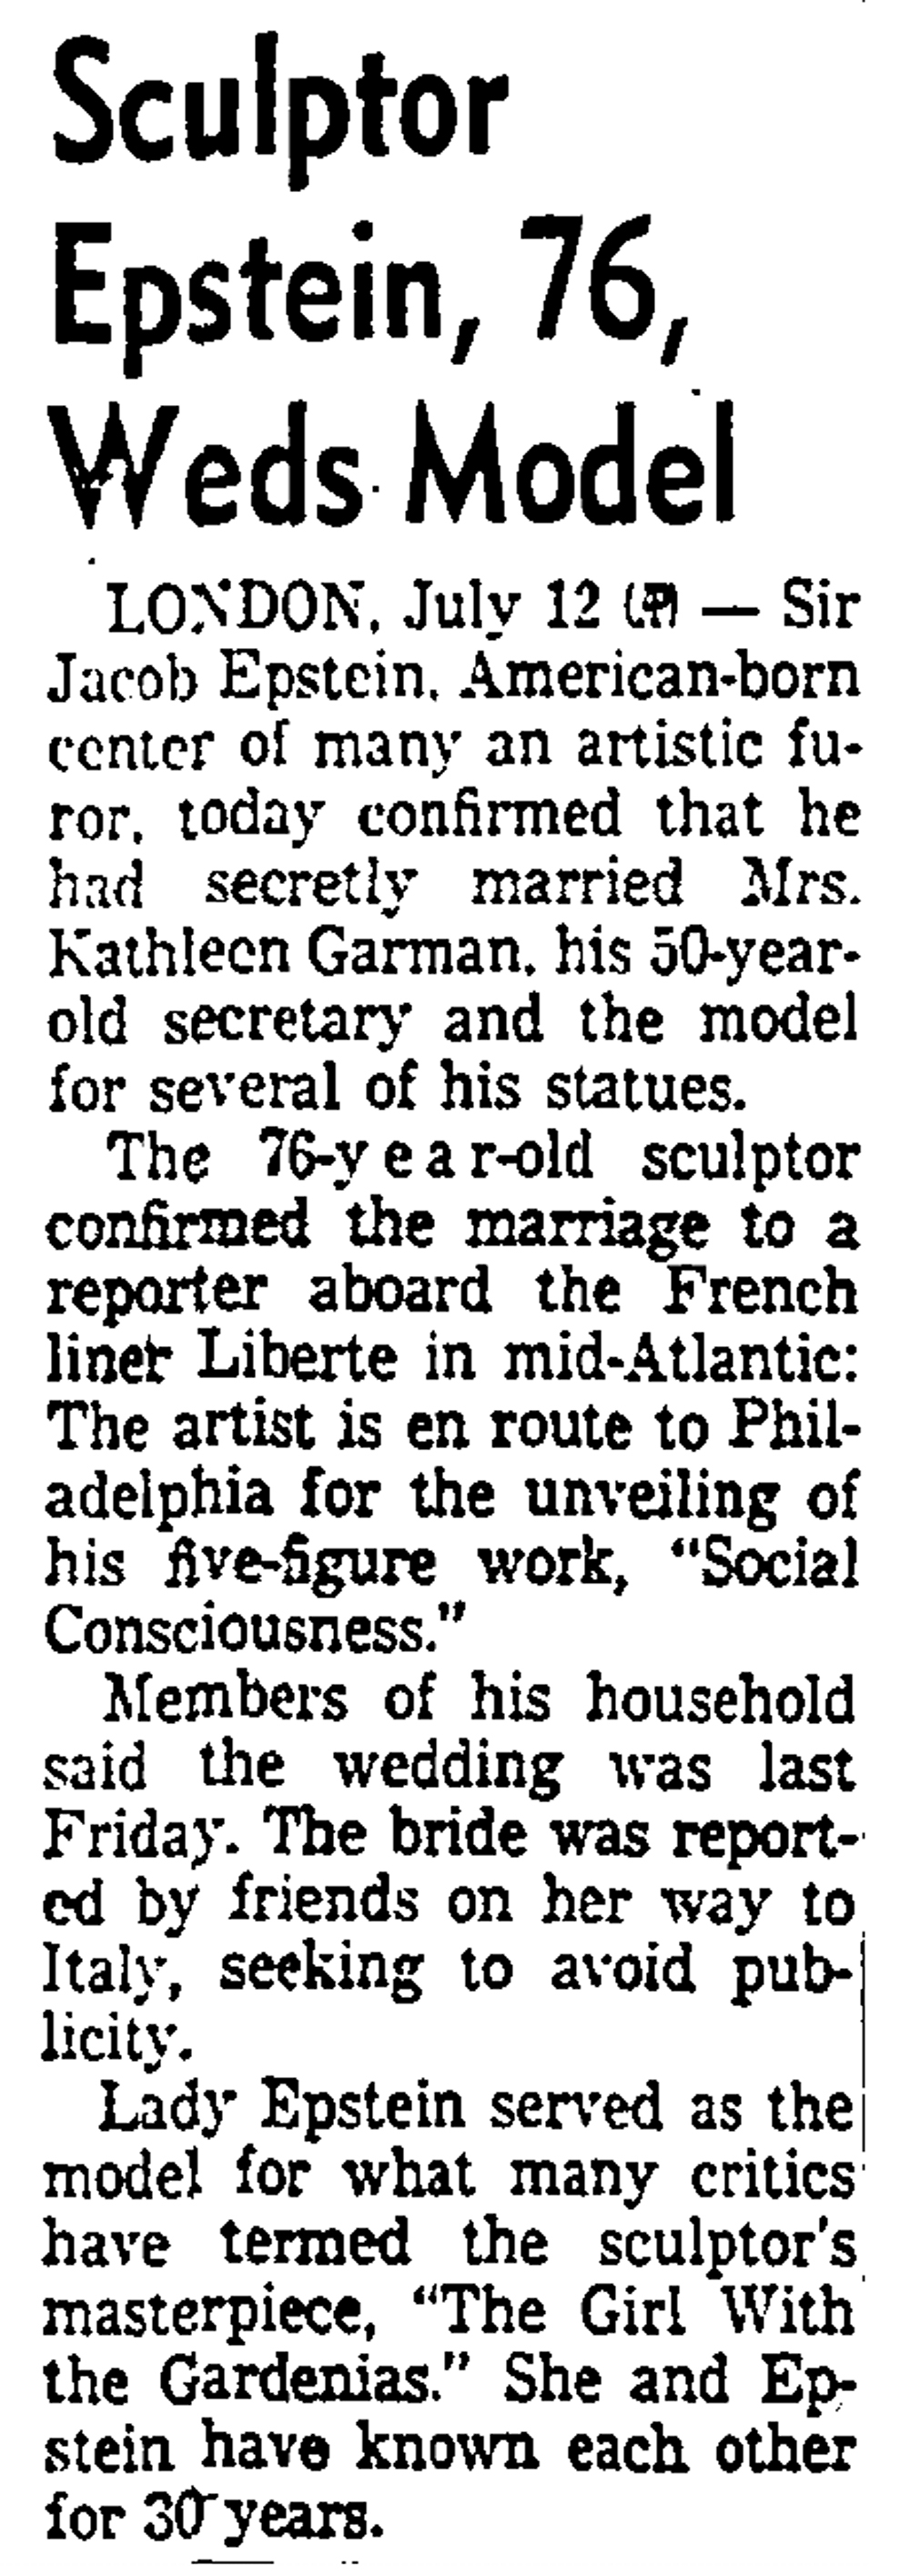 Los Angeles Times, July 13, 1955.